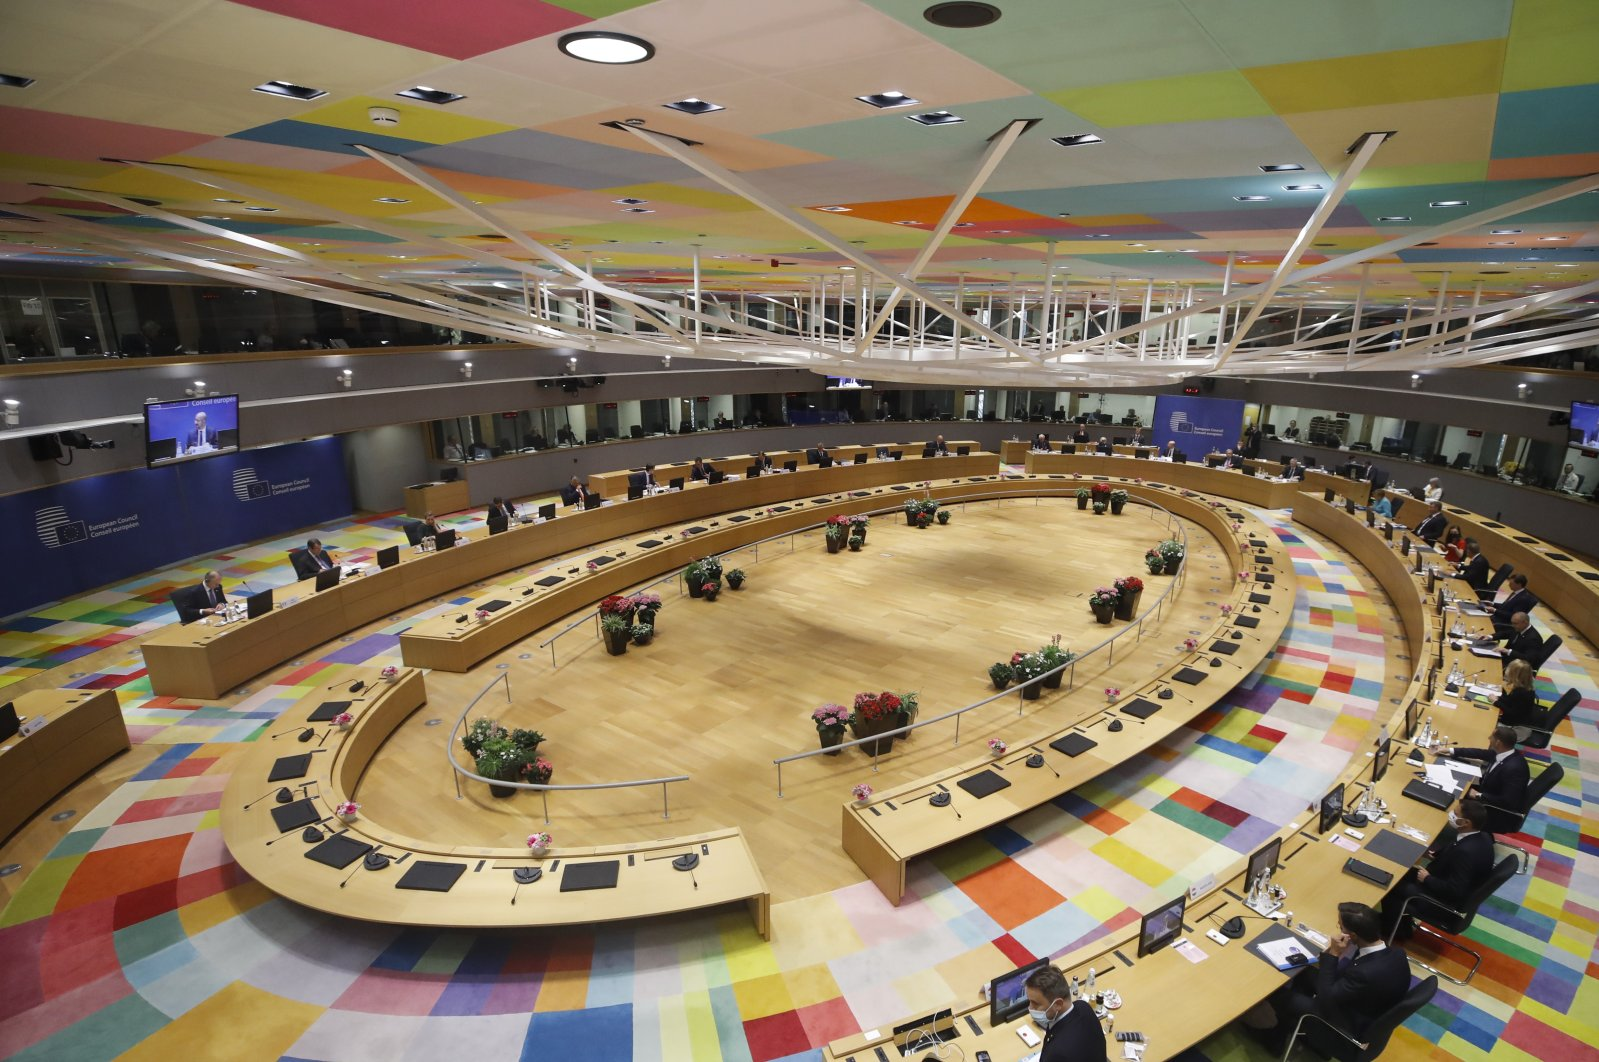 EU leaders gather in a main room during an EU summit at the European Council building in Brussels, Belgium, June 24, 2021. (AP Photo)